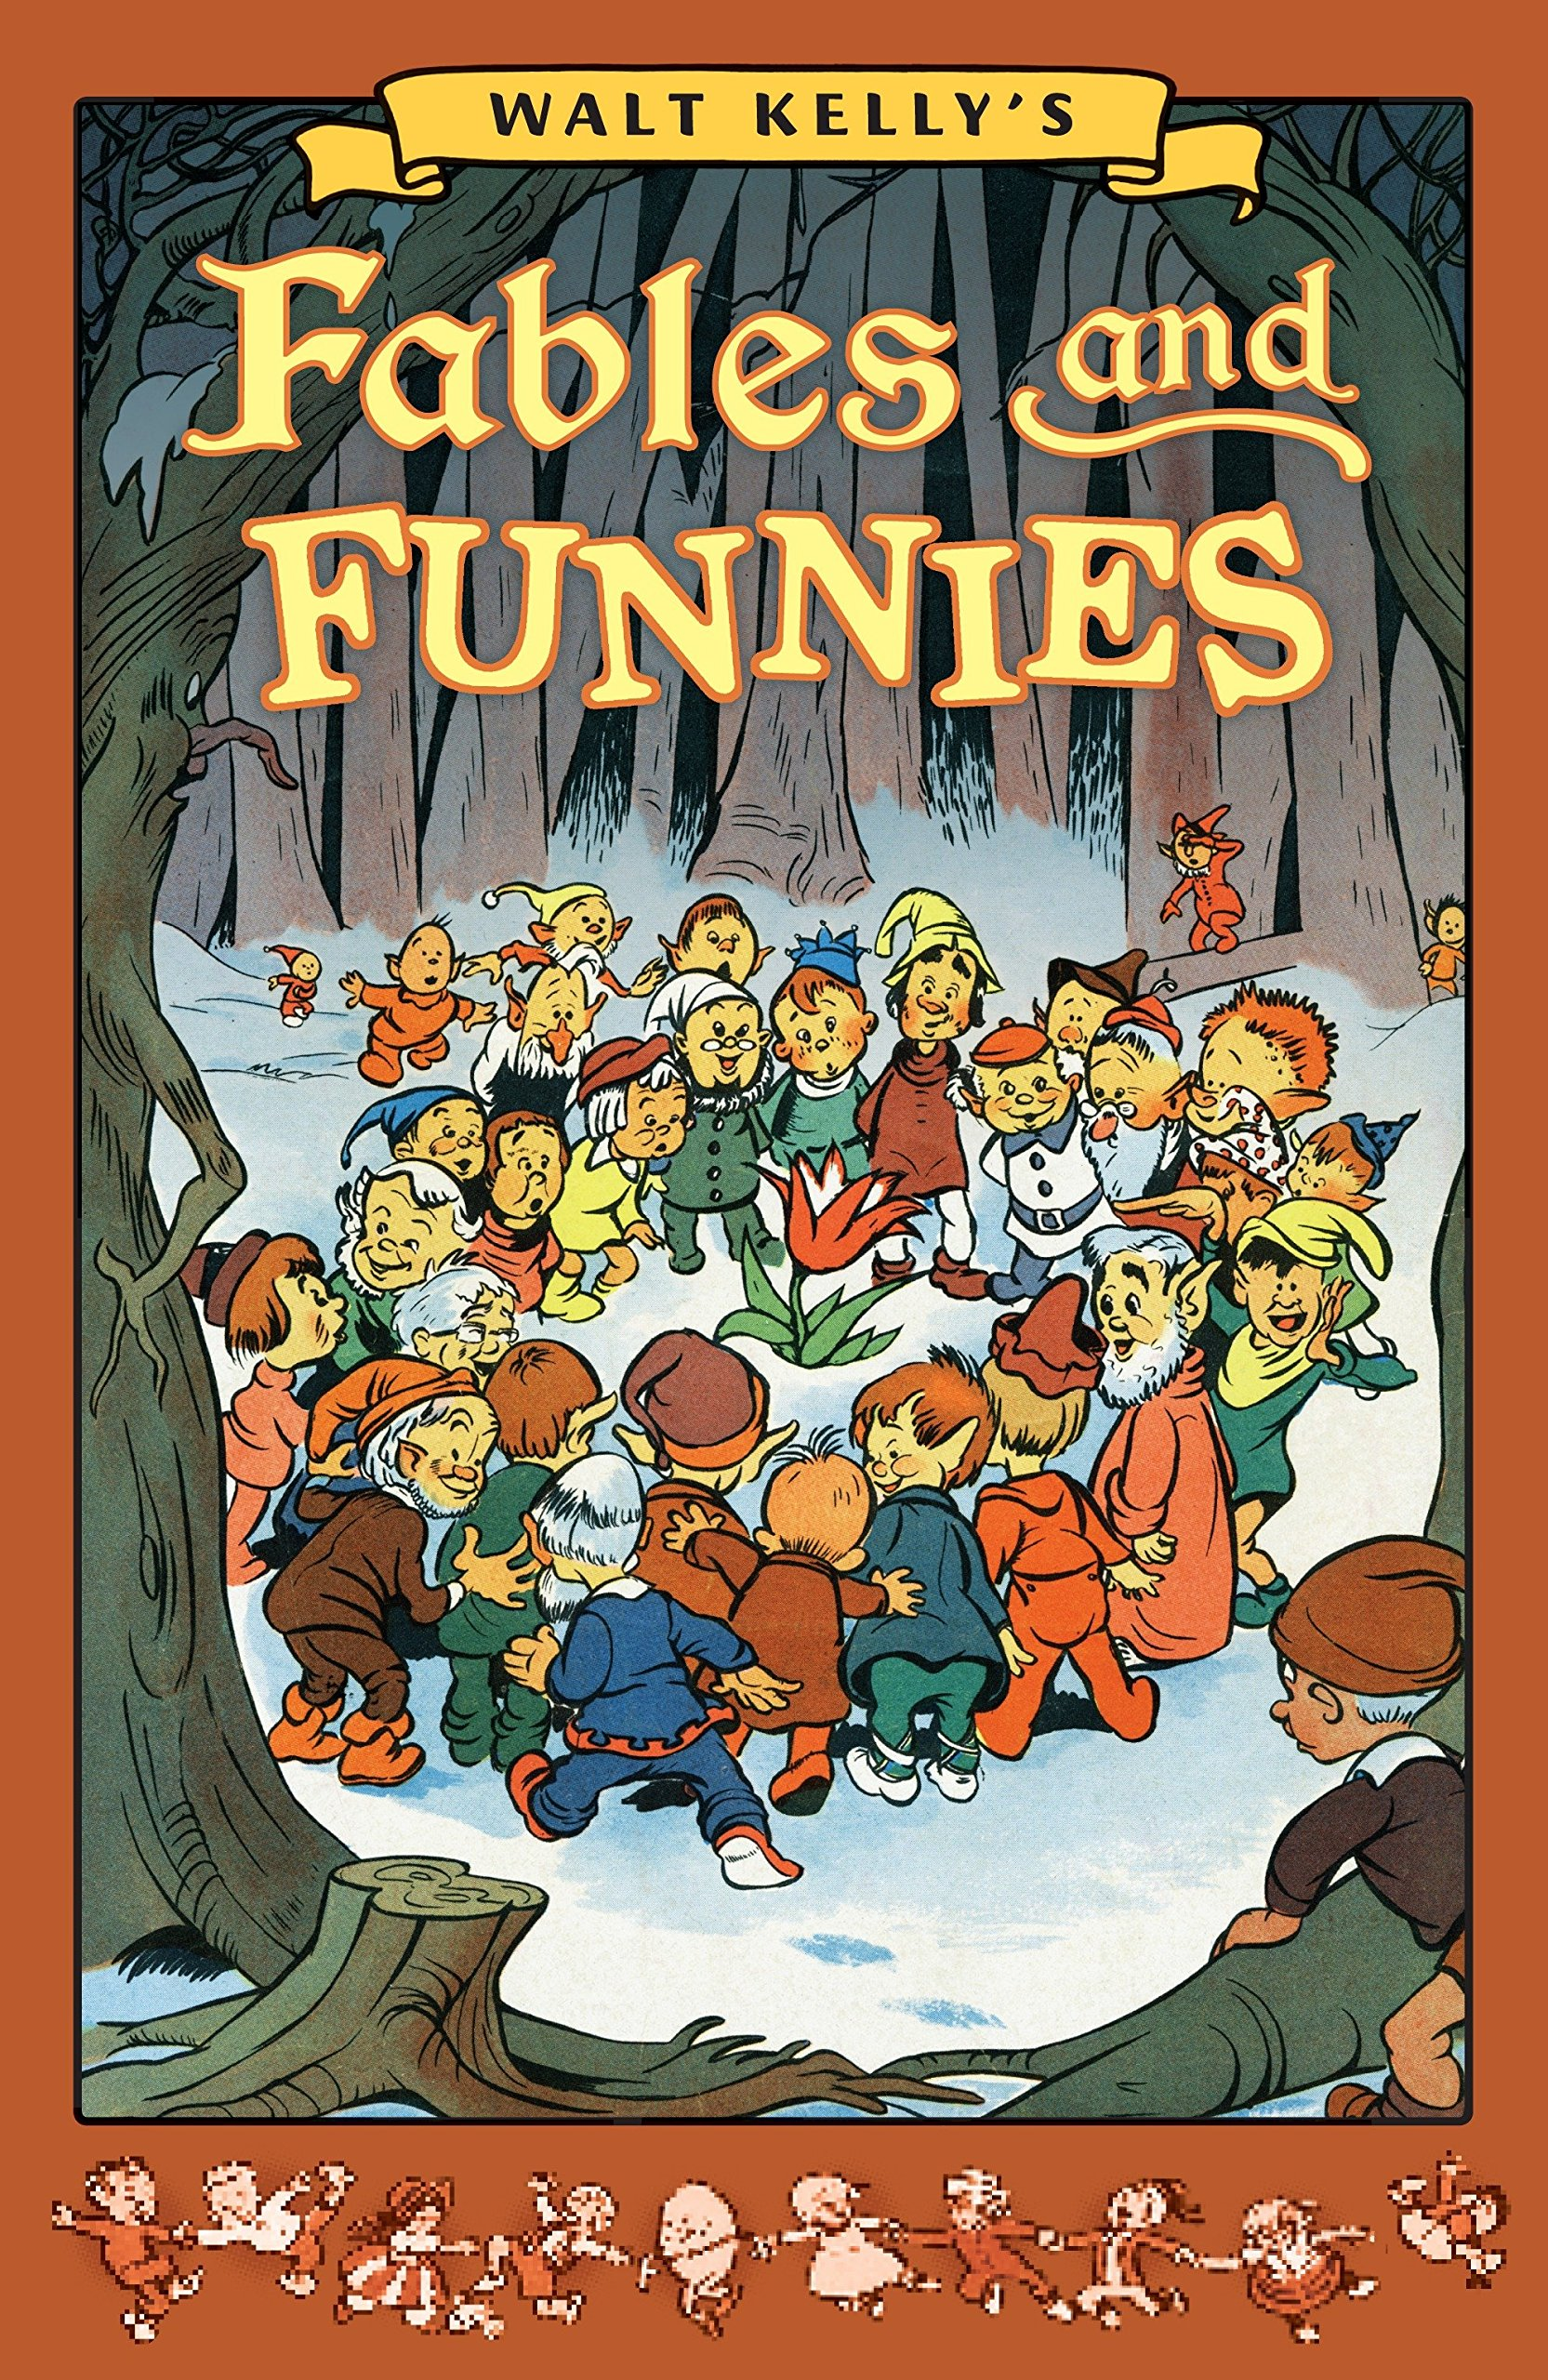 Walt Kelly's Fables and Funnies by Dark Horse Books